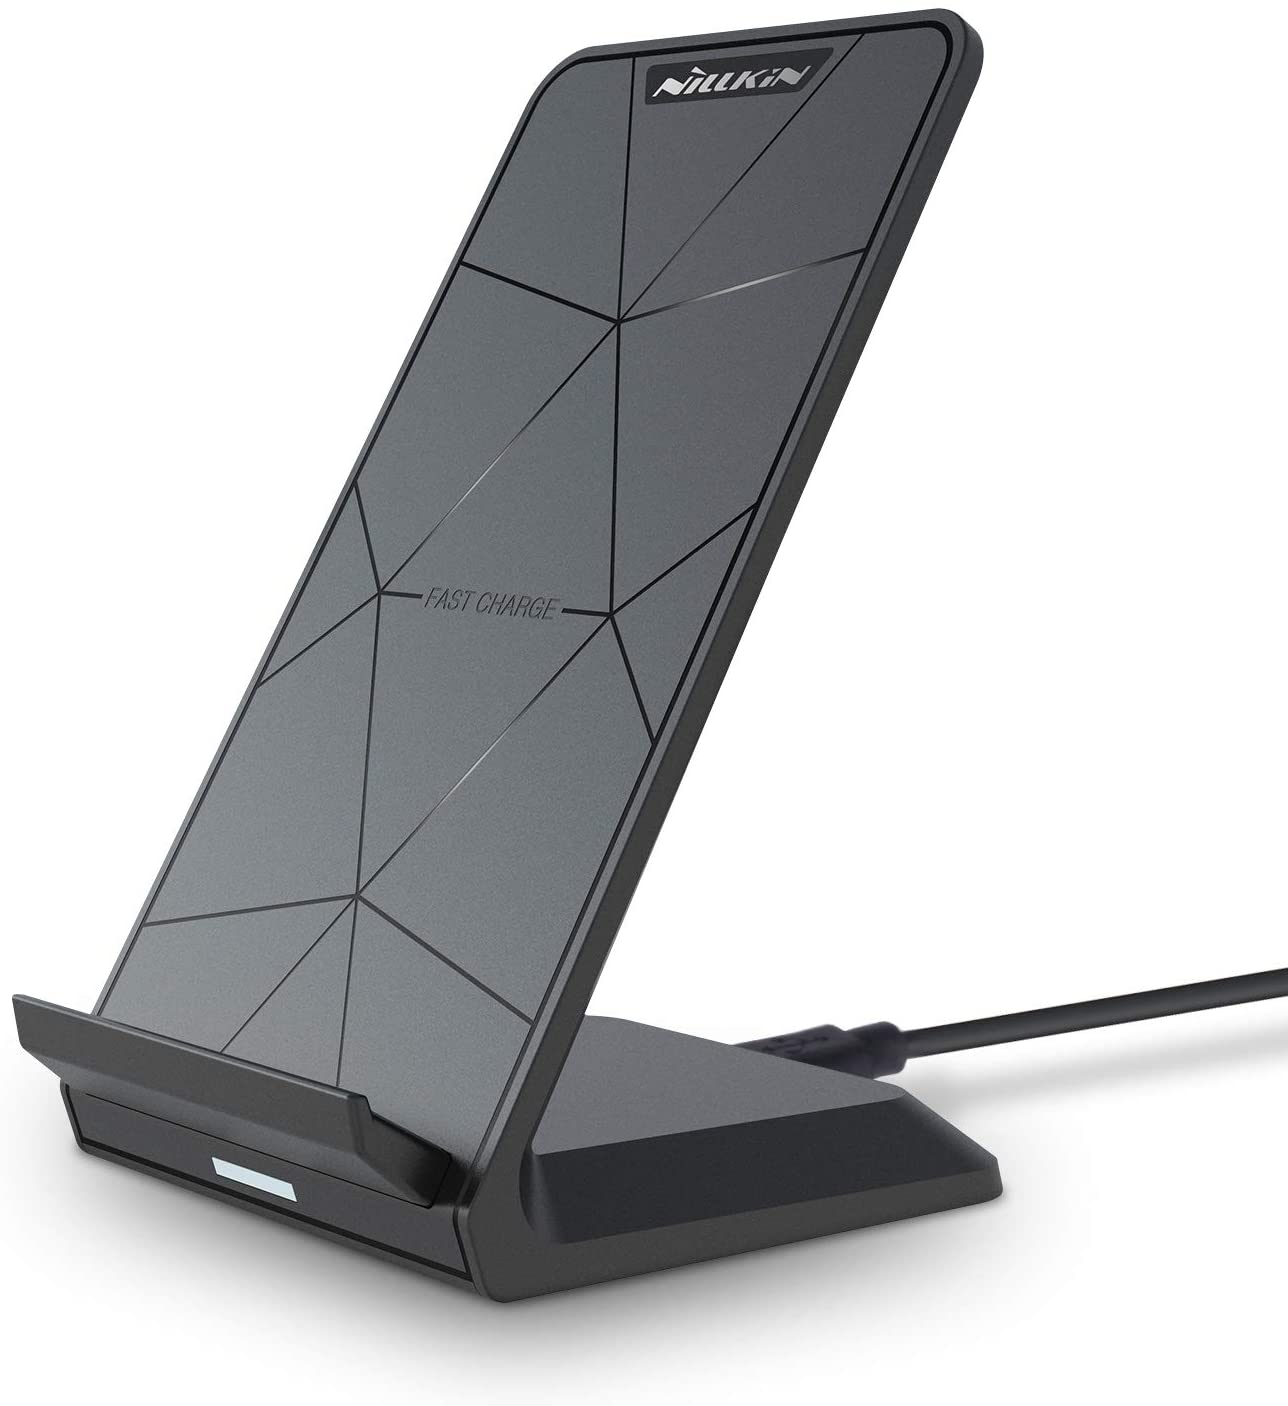 Nillkin Fast Wireless Charger Stand - 15W Qi Certified Wireless Charging Stand for iPhone /11/11 Pro/XS/SE/XR/X/8 Plus,Samsung Galaxy S20 S10 S9 S8 S7 Edge Note 20/10+/9/8 and More (No AC Adapter)